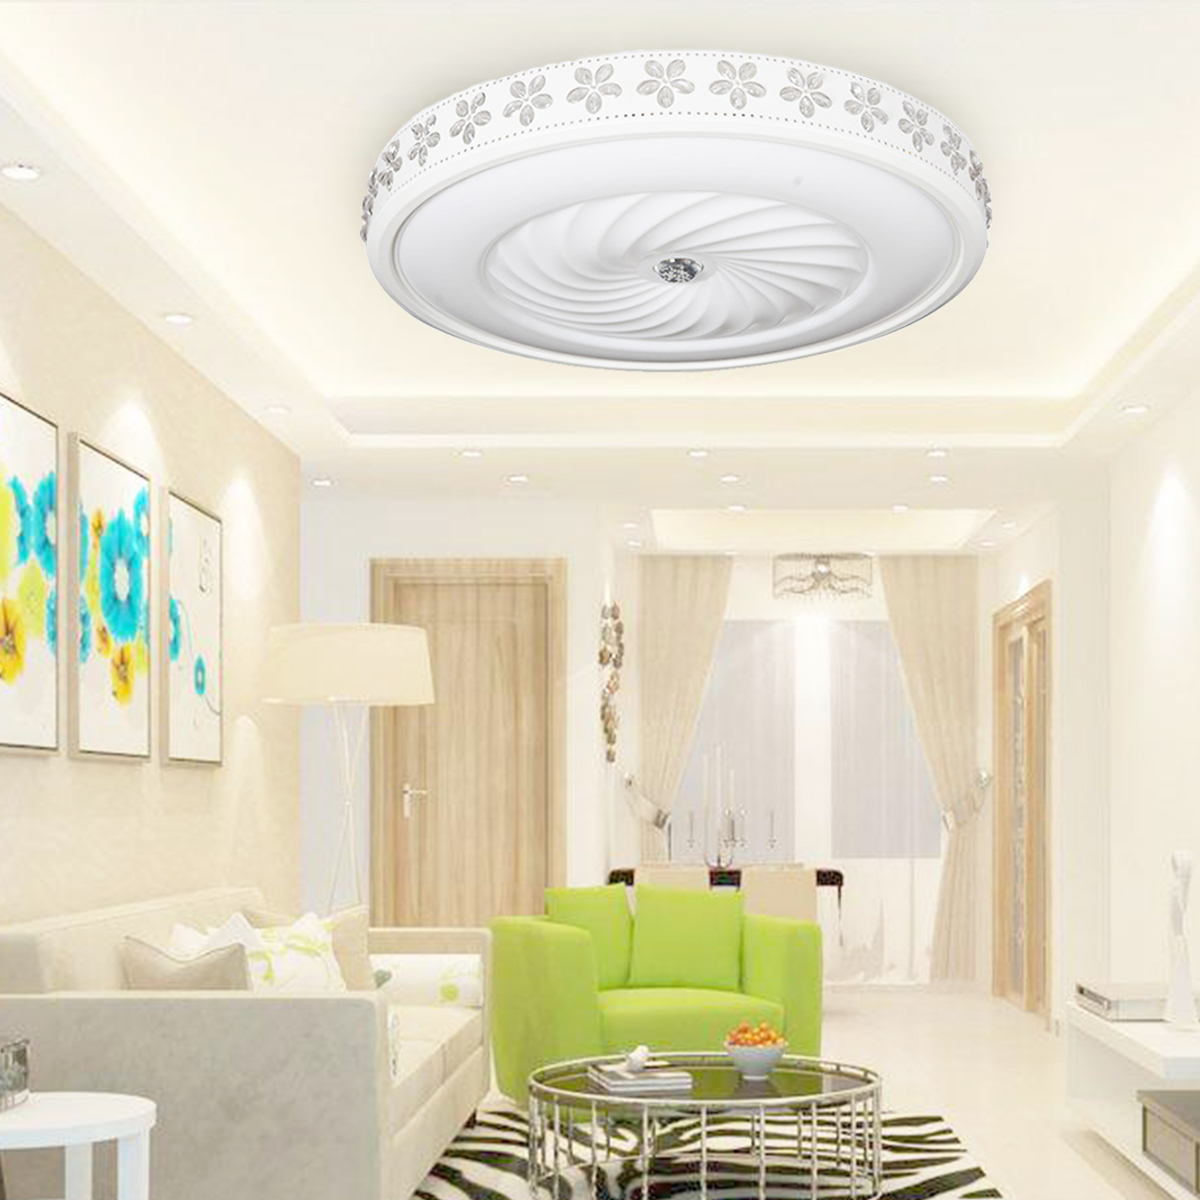 36W Round Shape 52cm Modern Simple LED Ceiling Lamps Led Ceiling Lights for Living Room Decorative Ceiling Light Home Kitchen36W Round Shape 52cm Modern Simple LED Ceiling Lamps Led Ceiling Lights for Living Room Decorative Ceiling Light Home Kitchen